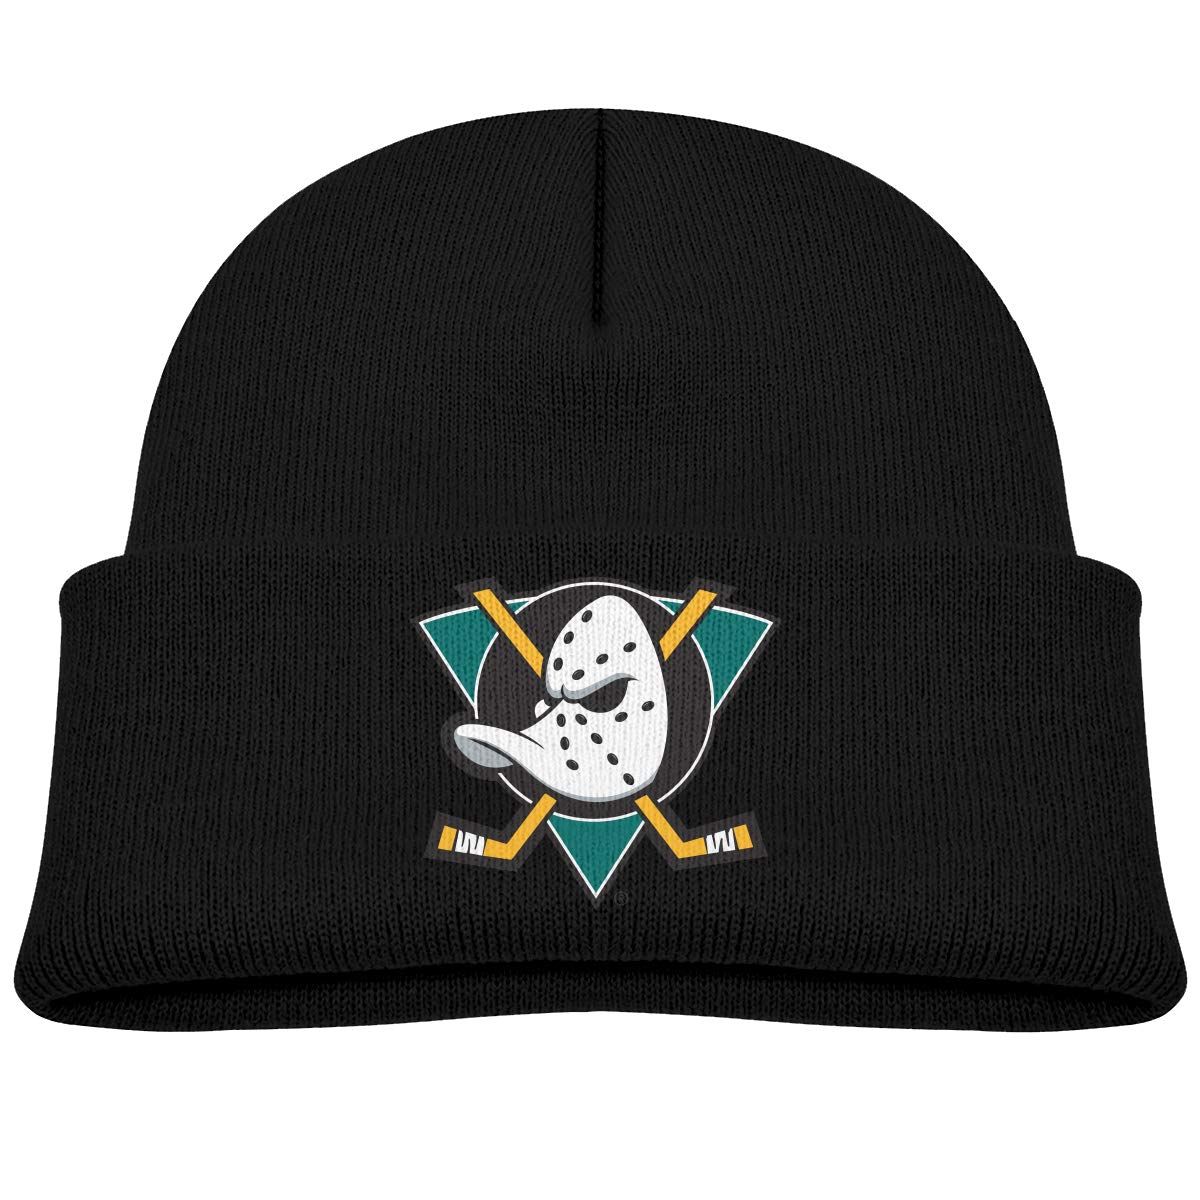 Wallsda Mighty Ducks Of Anaheim Logo Kids Warm Winter Hats Acrylic Knit Cuff Beanie Cap Daily Beanie Hat